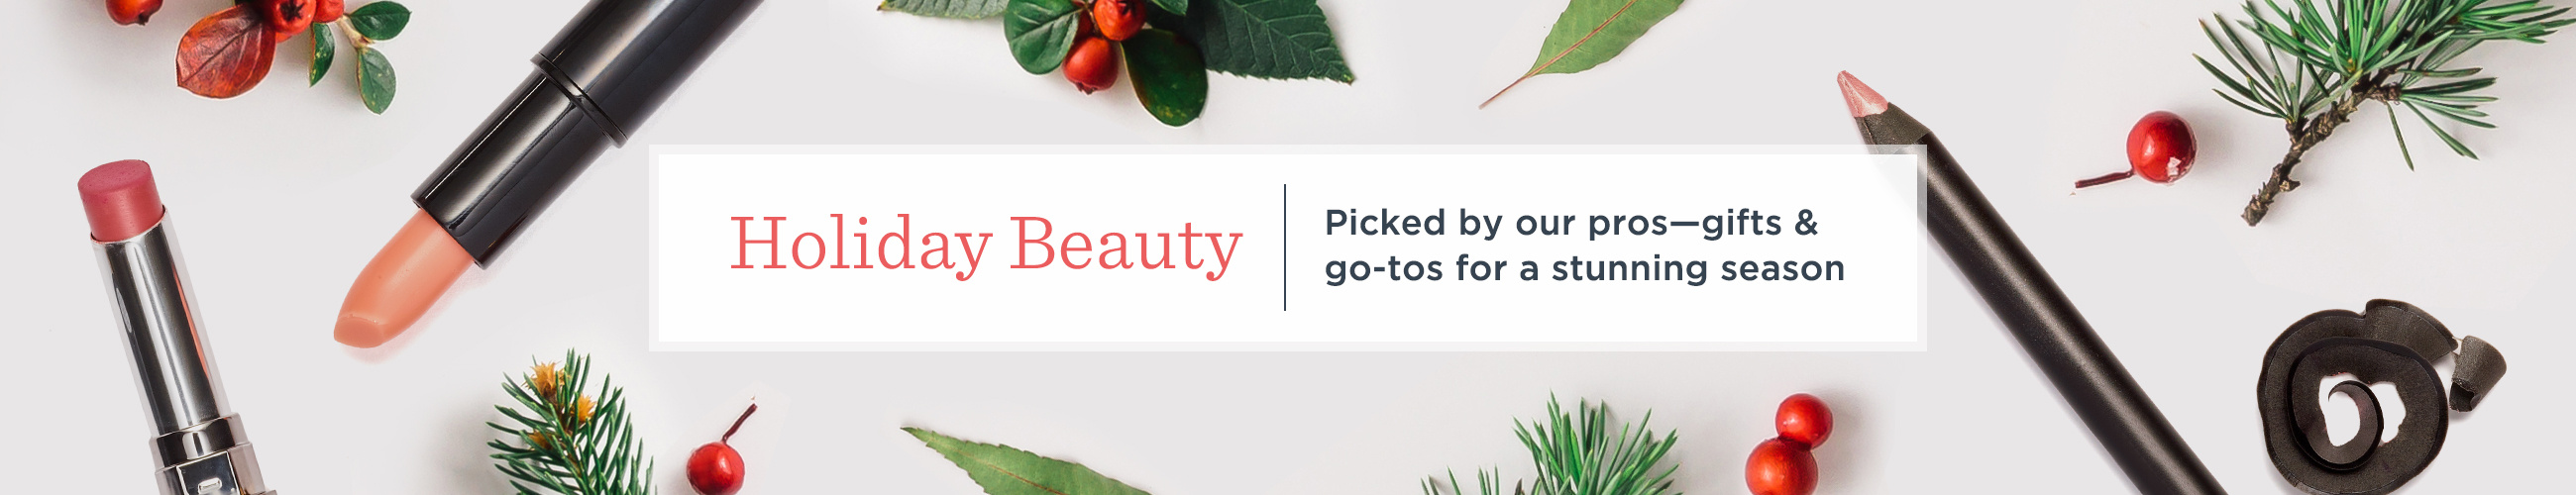 Holiday Beaut. Picked by our pros—gifts & go-tos for a stunning season